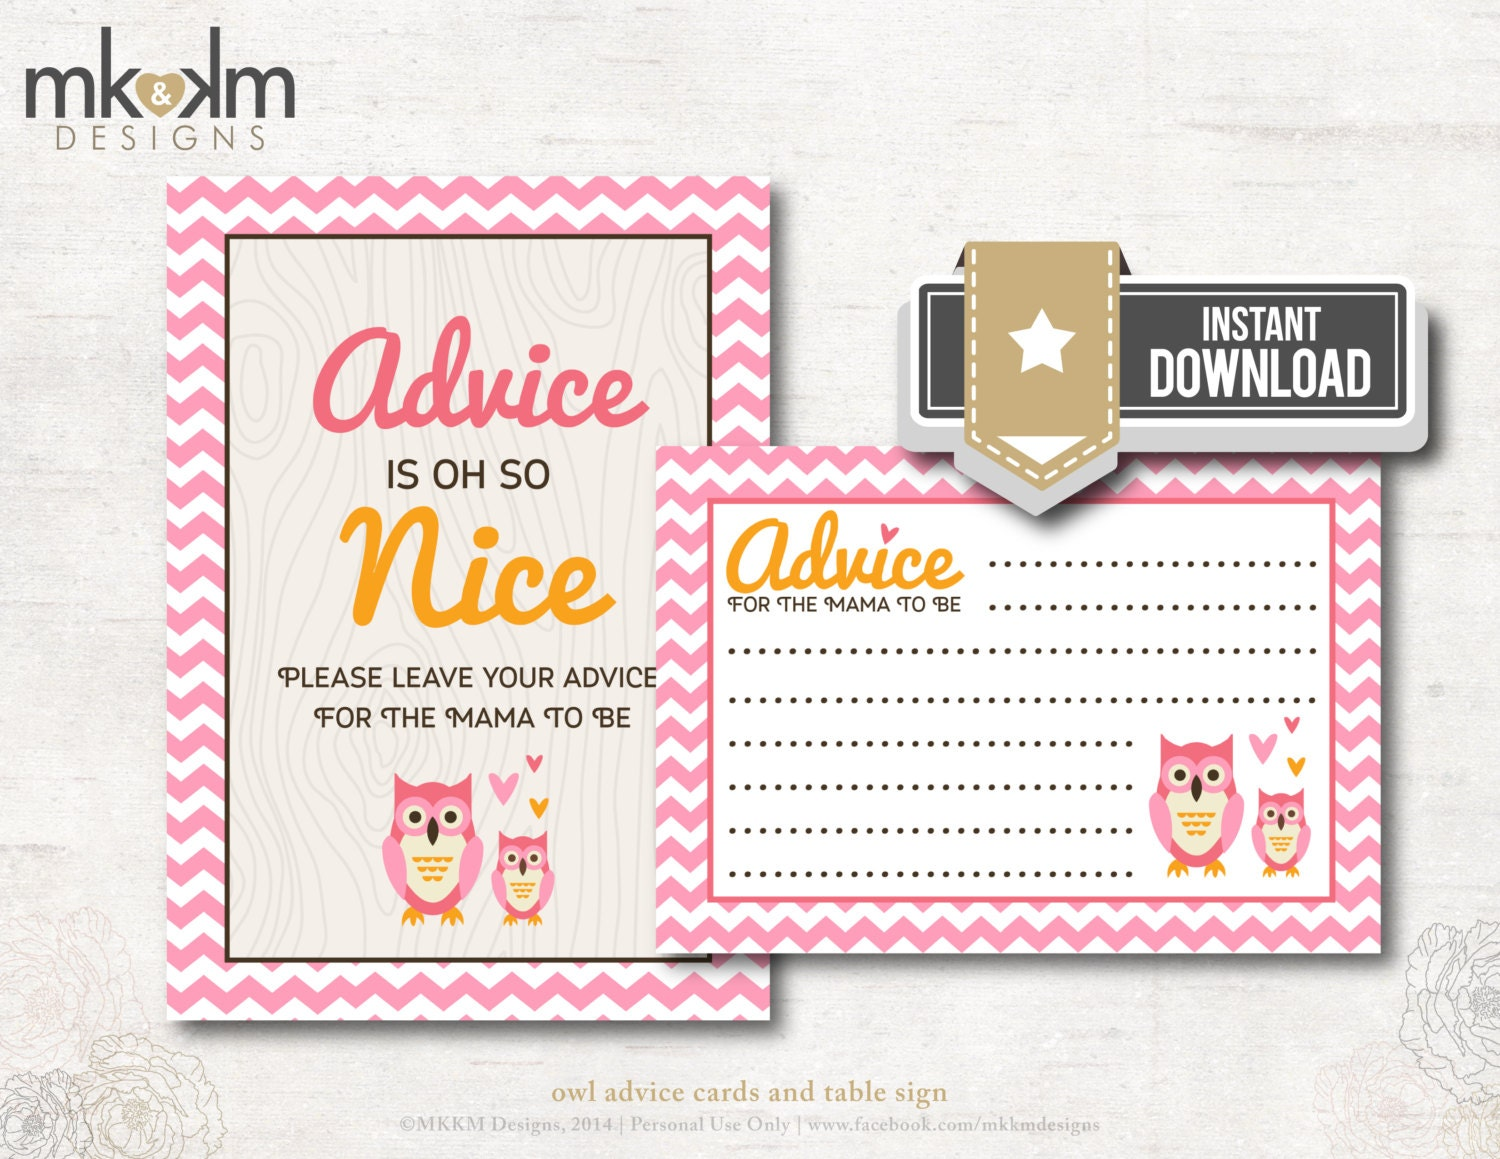 owl baby shower advice cards for mama to be shower by mkkmdesigns